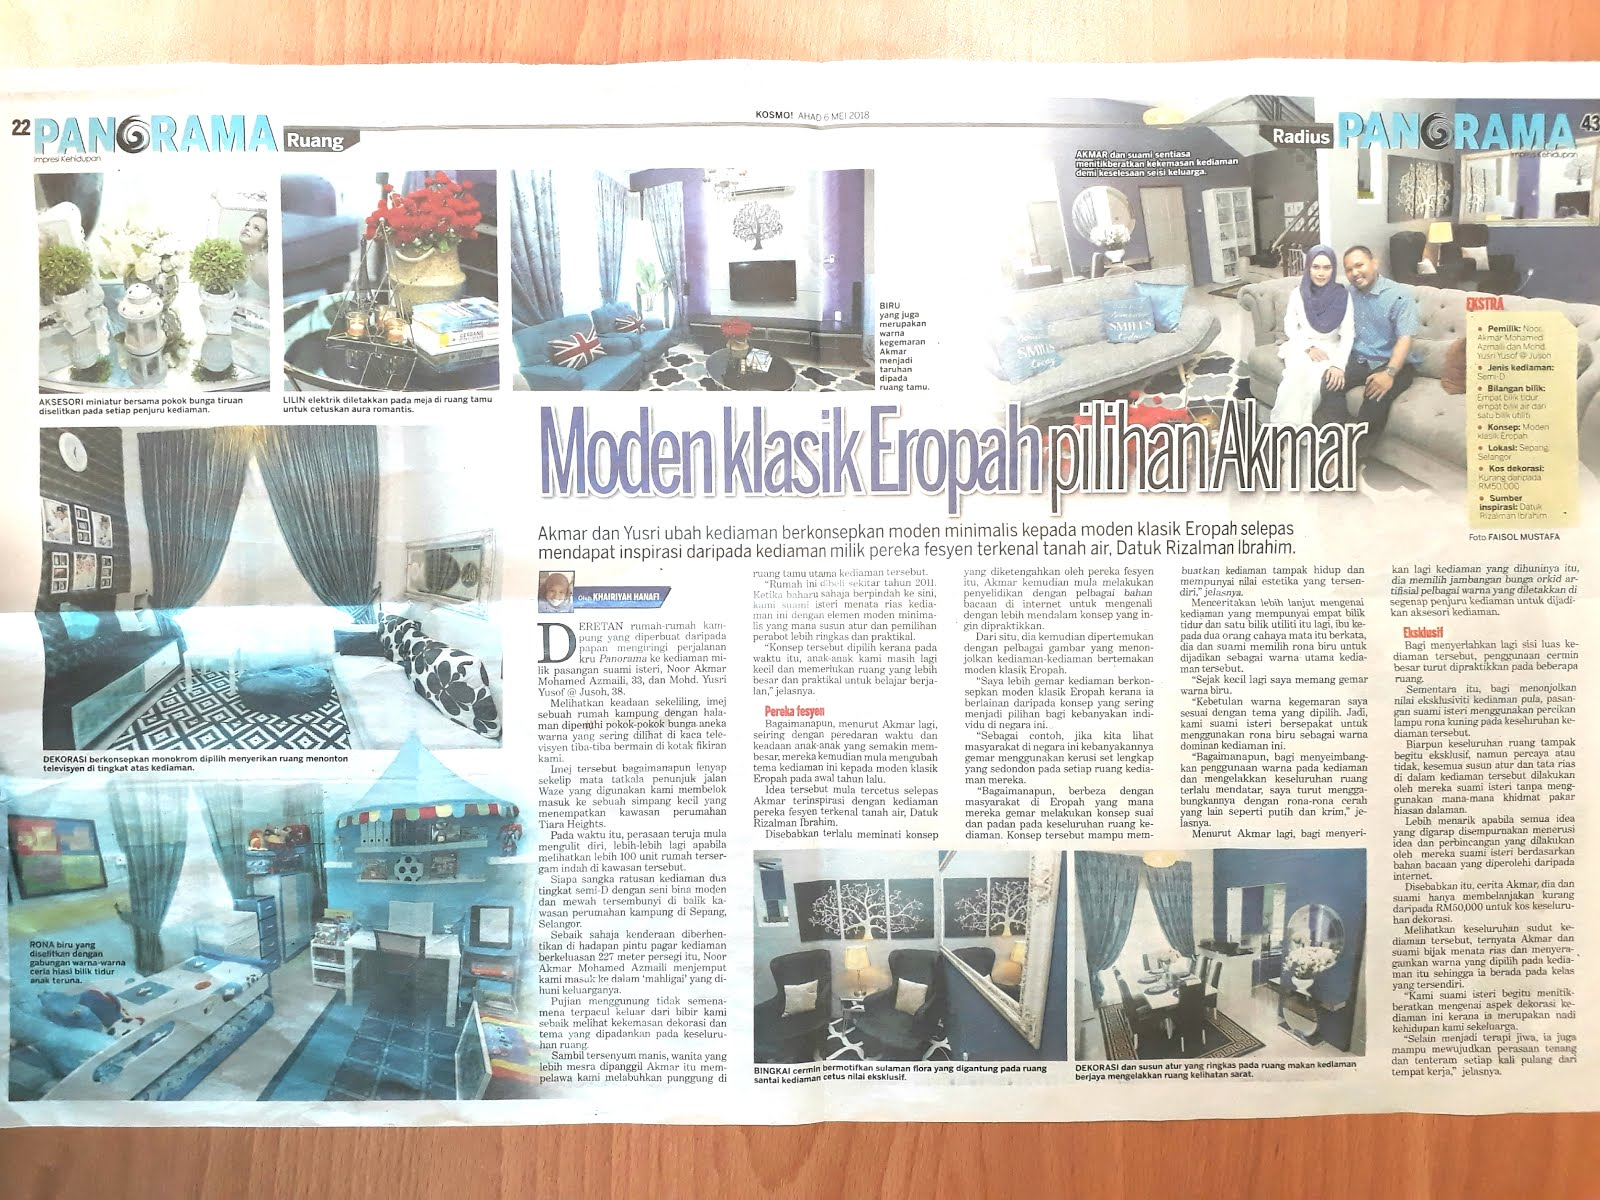 FEATURED in Kosmo! Ahad